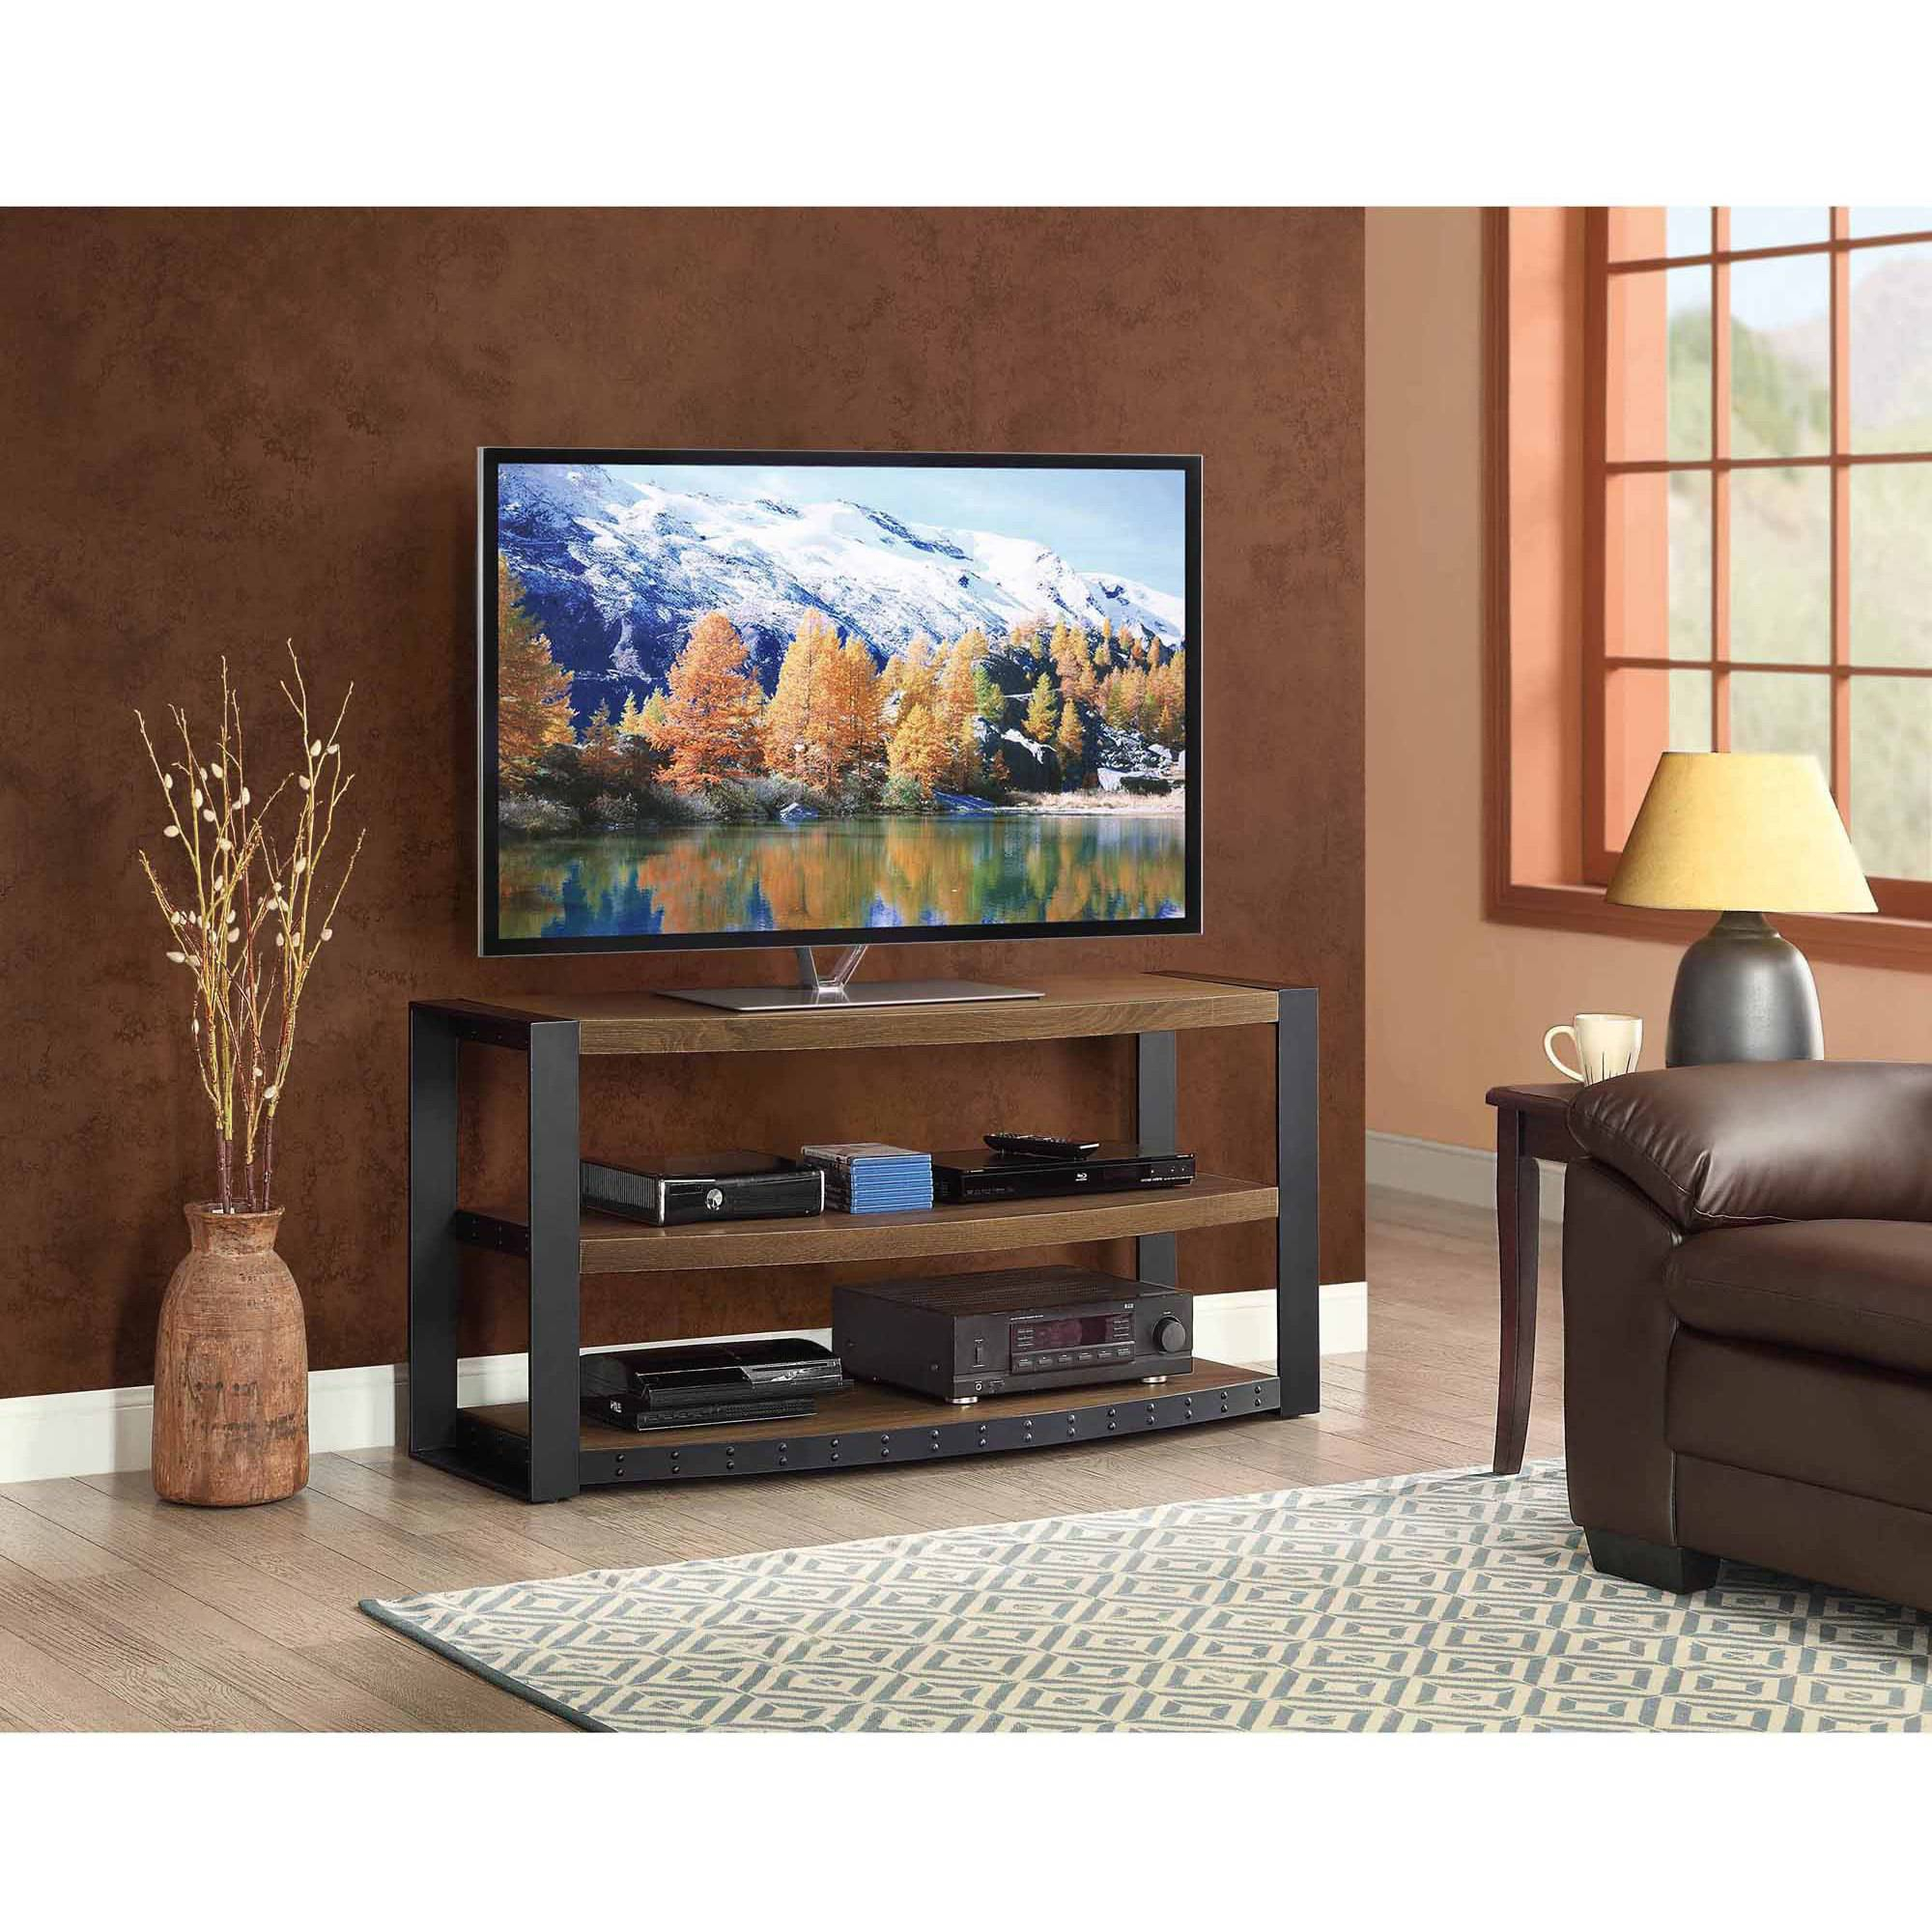 65 Inch Tv Stands Brown | Www.tollebild regarding Melrose Barnhouse Brown 65 Inch Lowboy Tv Stands (Image 11 of 30)